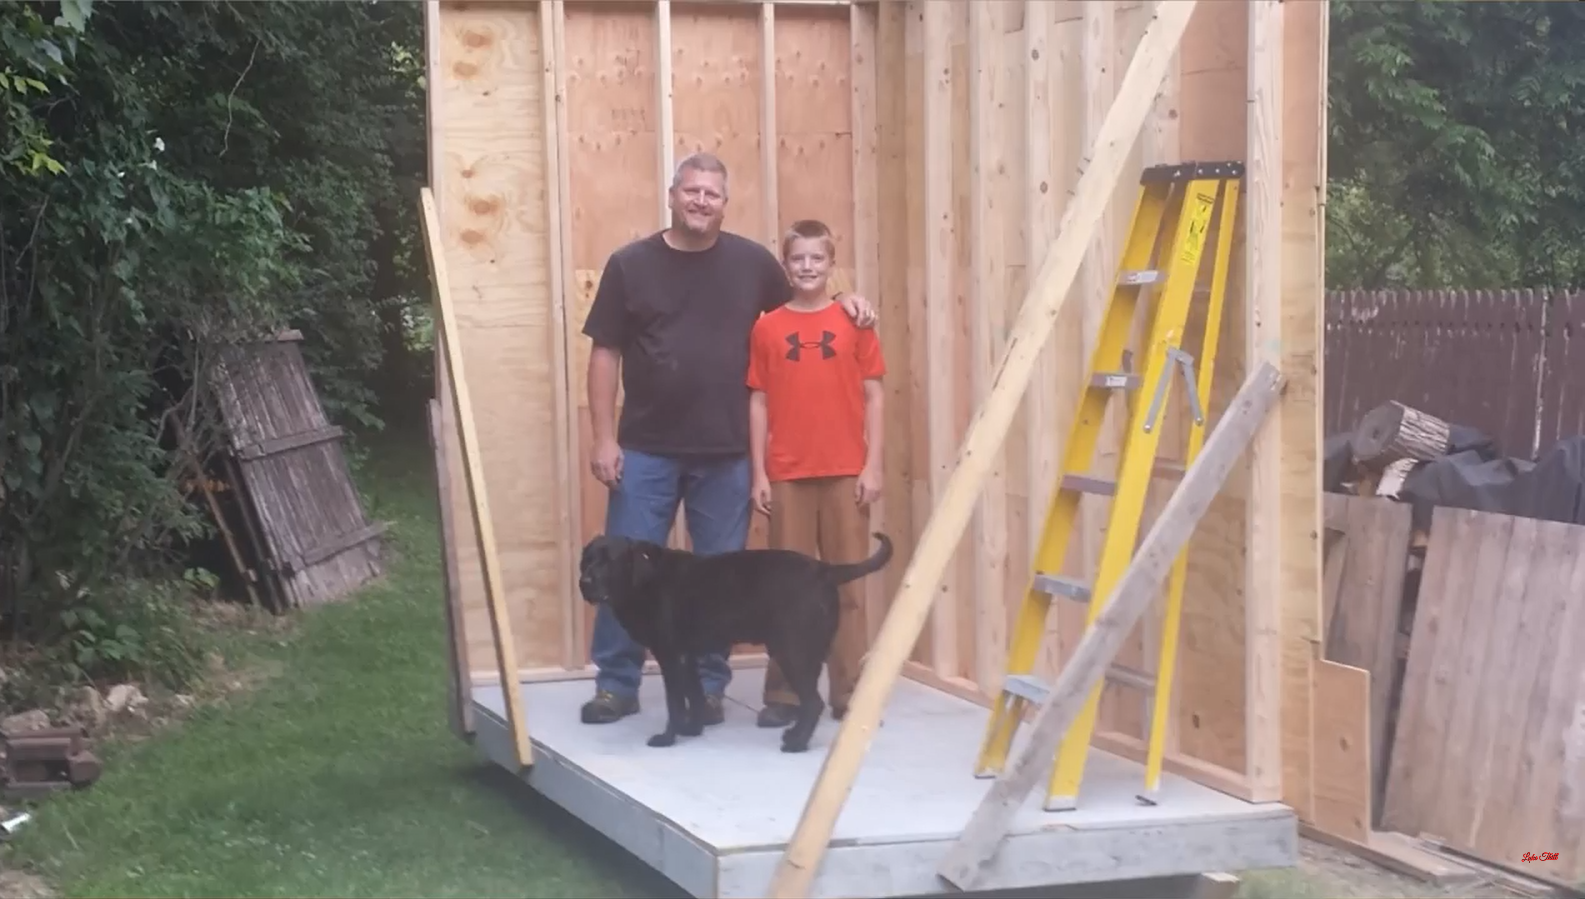 13 Year Old Boy Built His Very Own Tiny House Only Spent 1500 Wiring A Youtube Through Lot Of Tutorials He Learned The Ins And Outs Framing Structure